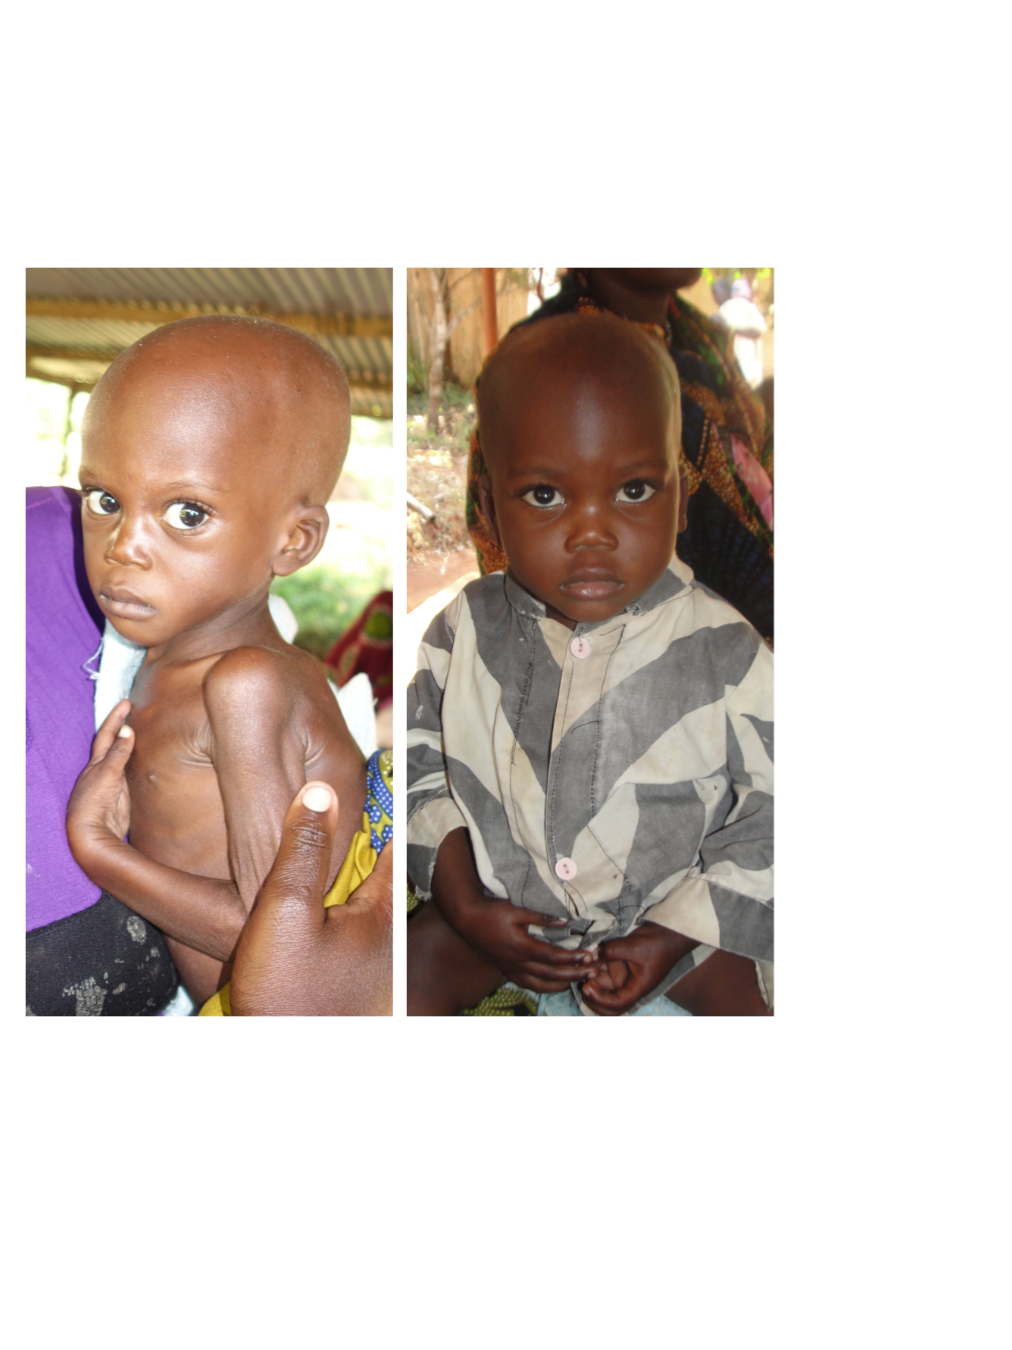 Meet Greyson - Greyson (age 1 year, 8 months) was referred to Maisha Matters by Geita Regional Hospital for concerns of severe malnutrition. At the time he weighed 5.97 kgs (13.1 lbs). After working with him closely for a couple of weeks, Neema House staff recognized possible signs of TB and took him to the clinic for testing and medication. Within 6 weeks of treatment and nutritional support, Greyson had gained 3 kgs (6.6 lbs). He has now regained strength to sit and play and has even begun walking and catching up on other developmental skills.